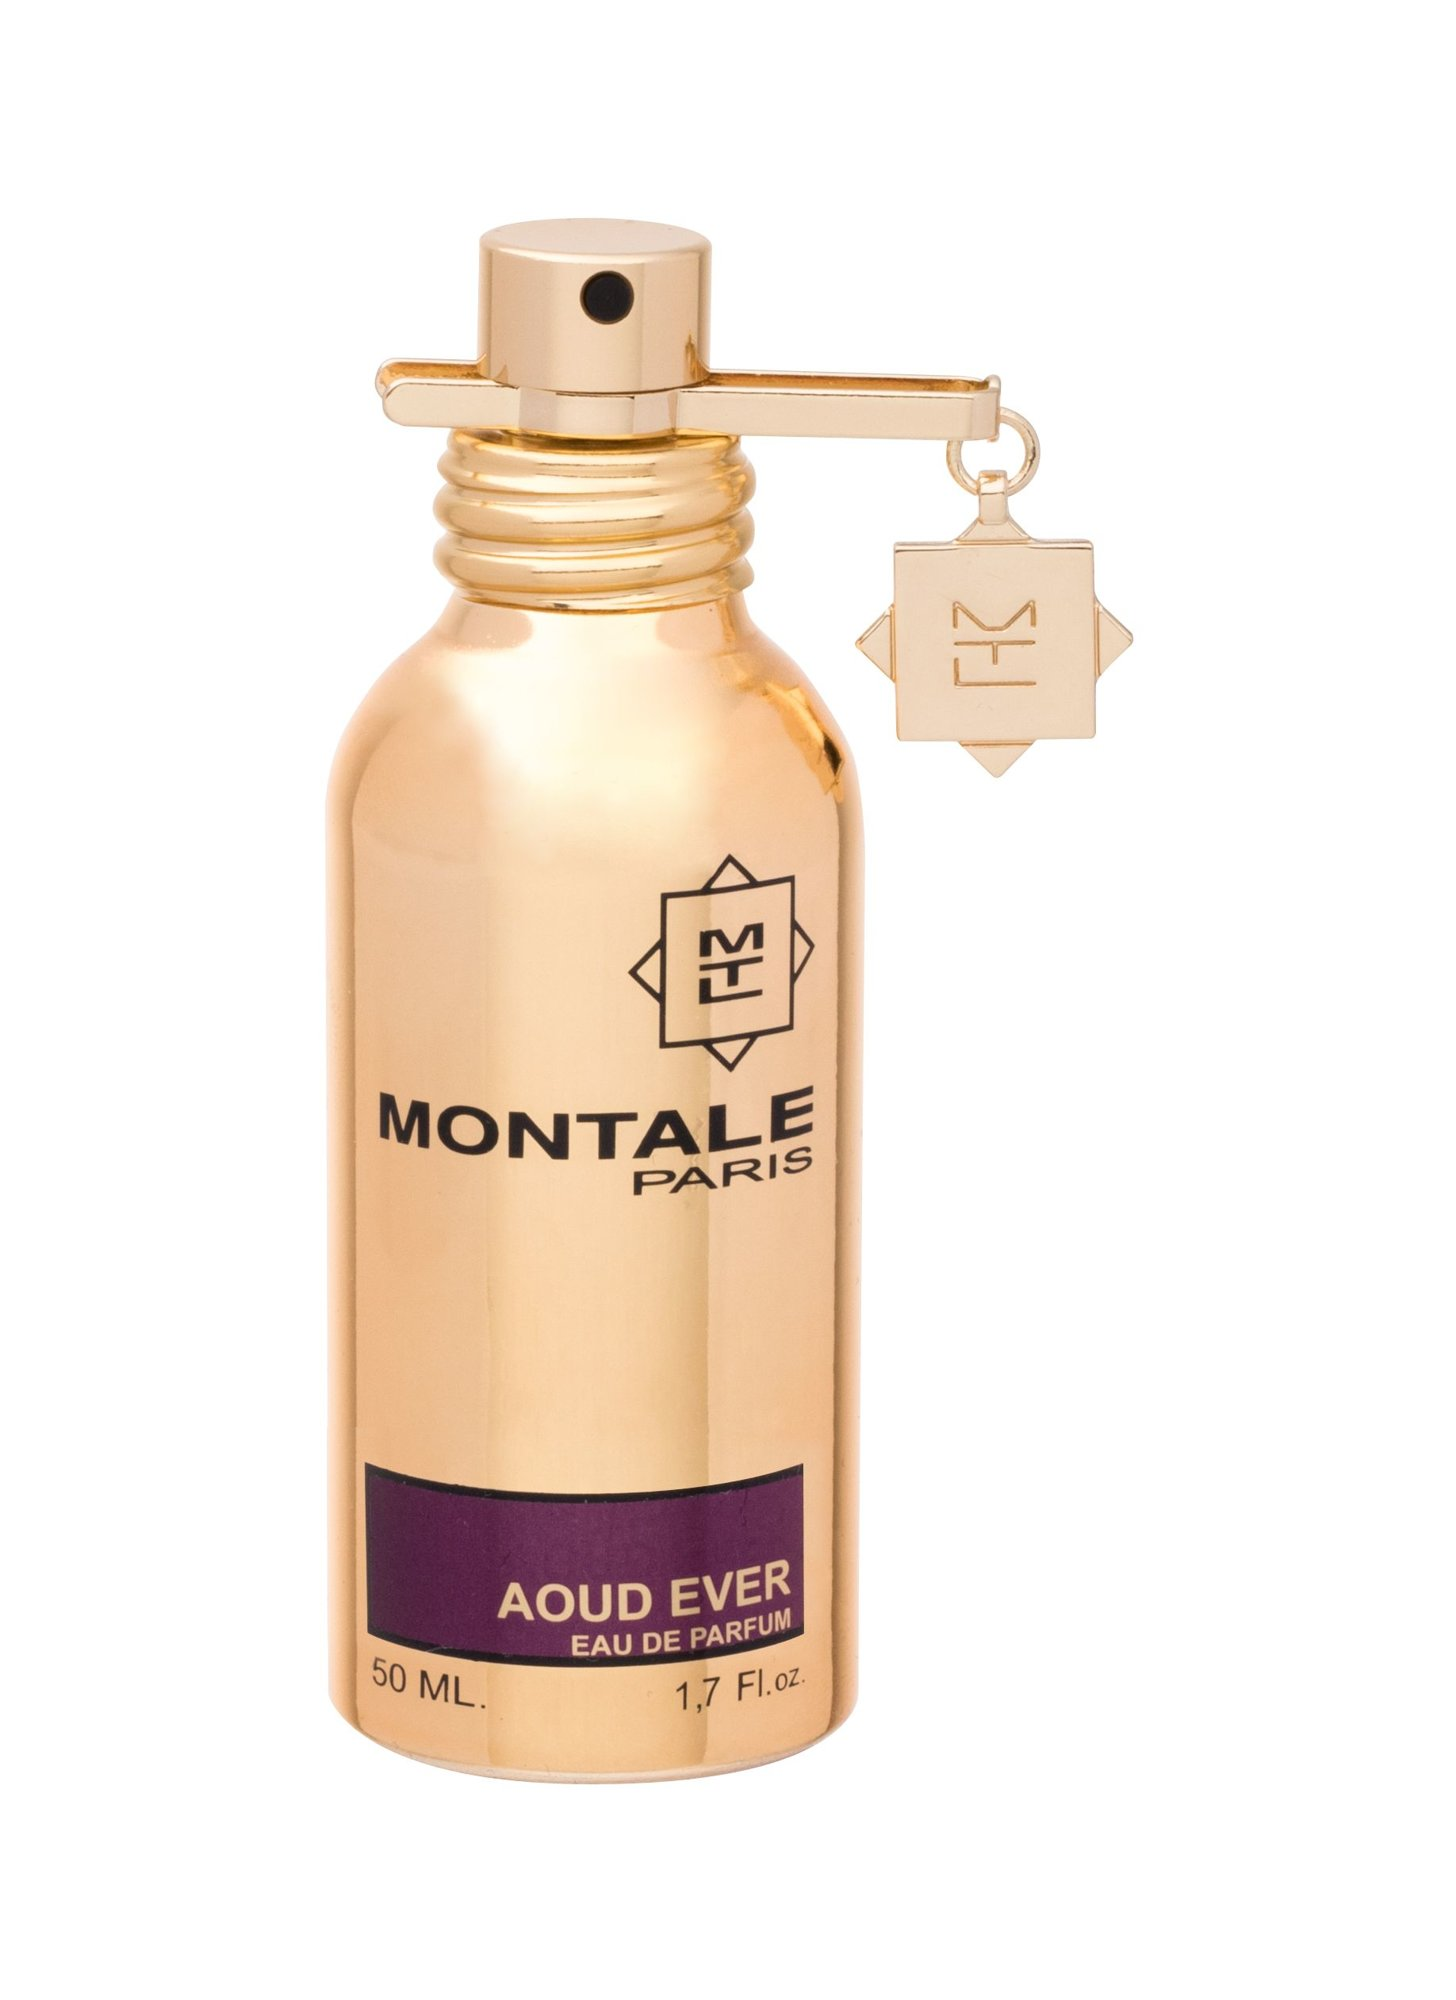 Montale Paris Aoud Ever EDP 50ml